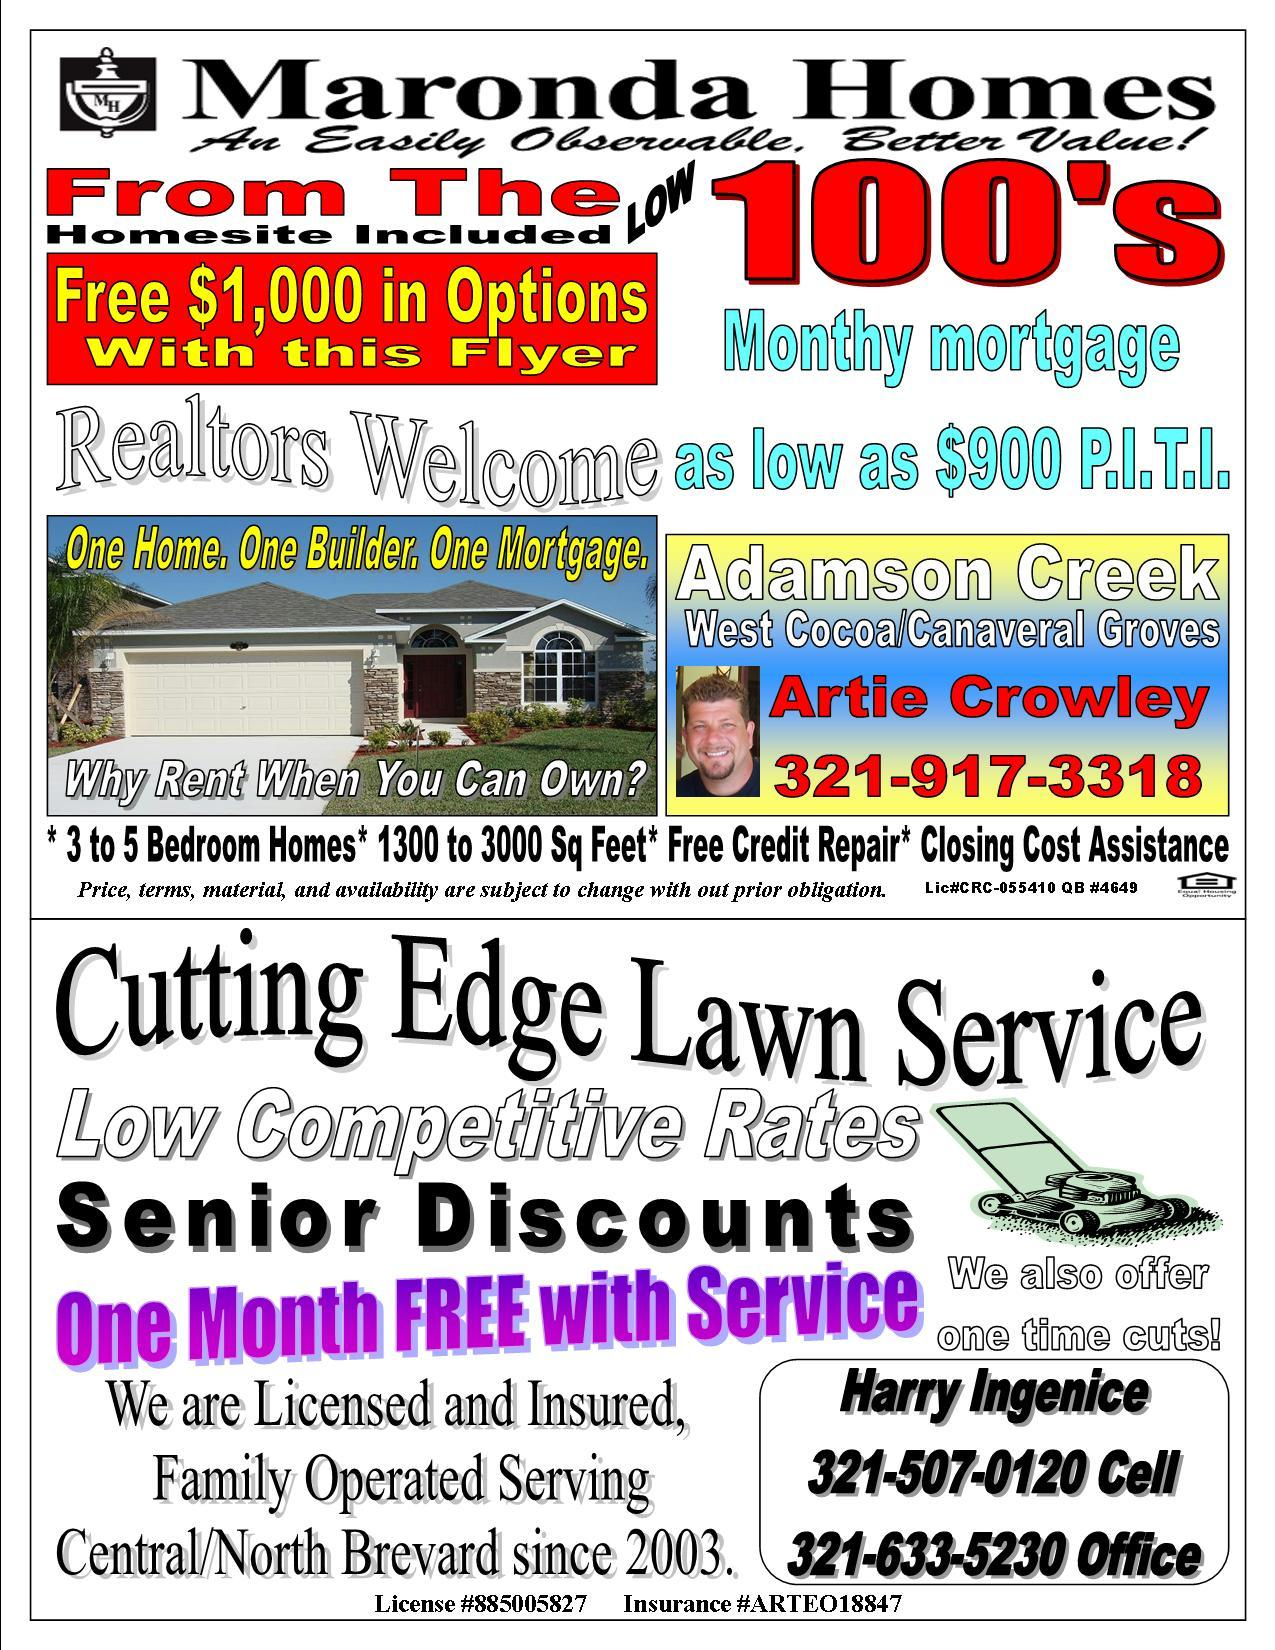 sandra story advertising ideas for landscaping business lawn care advertising